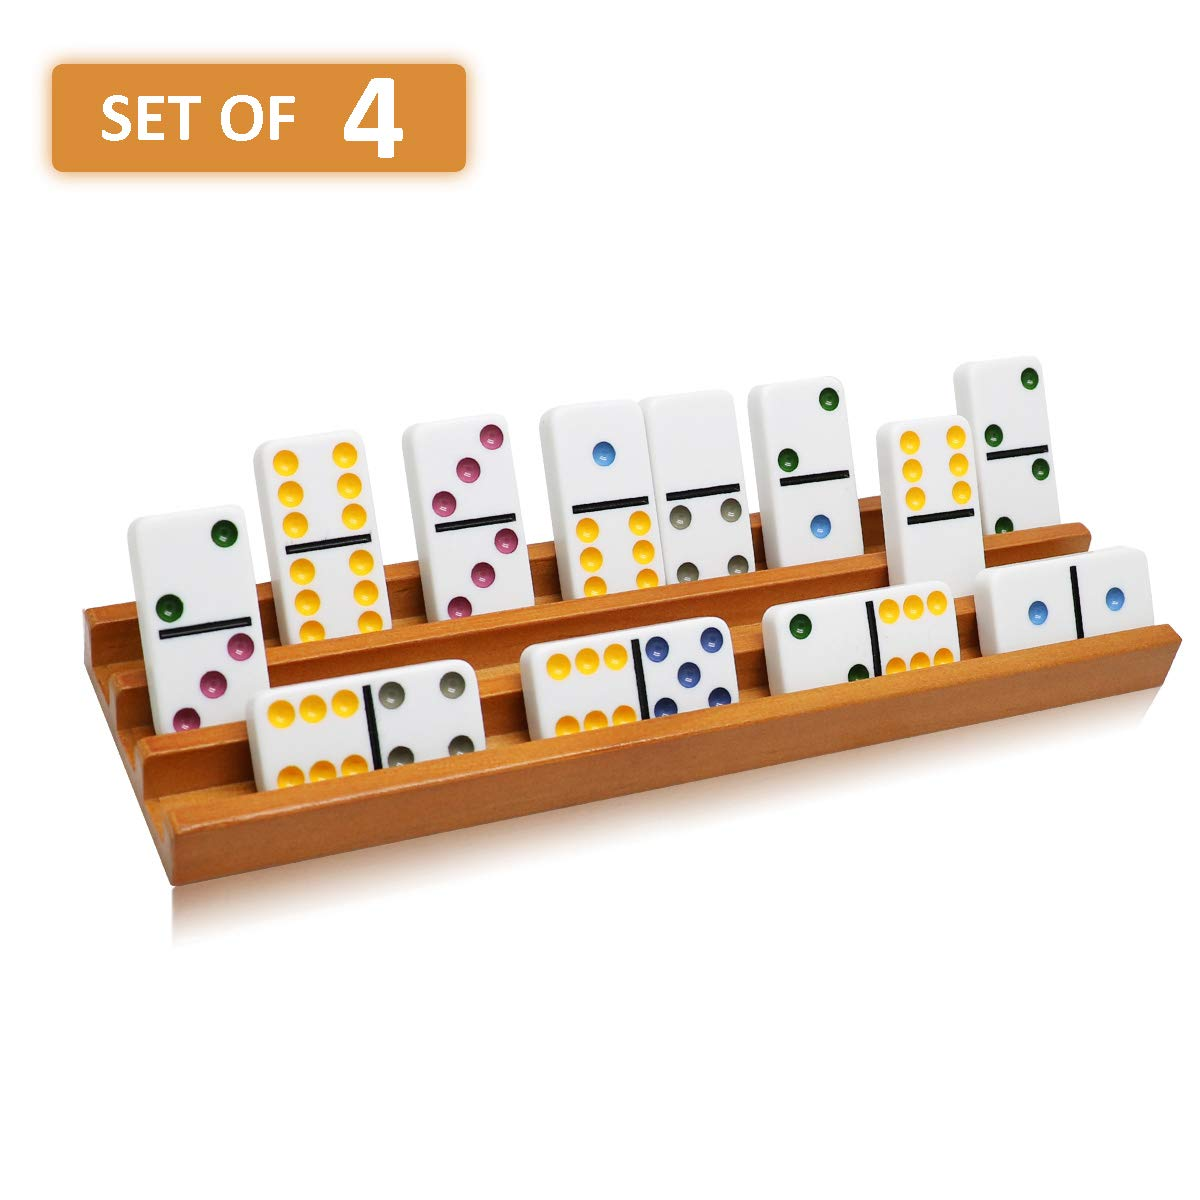 Exqline Wooden Domino Racks Trays Holders Organizer(Set of 4) - Premium Domino Tiles Holder Racks for Mexican Train Dominoes Games - Dominos NOT Included by Exqline